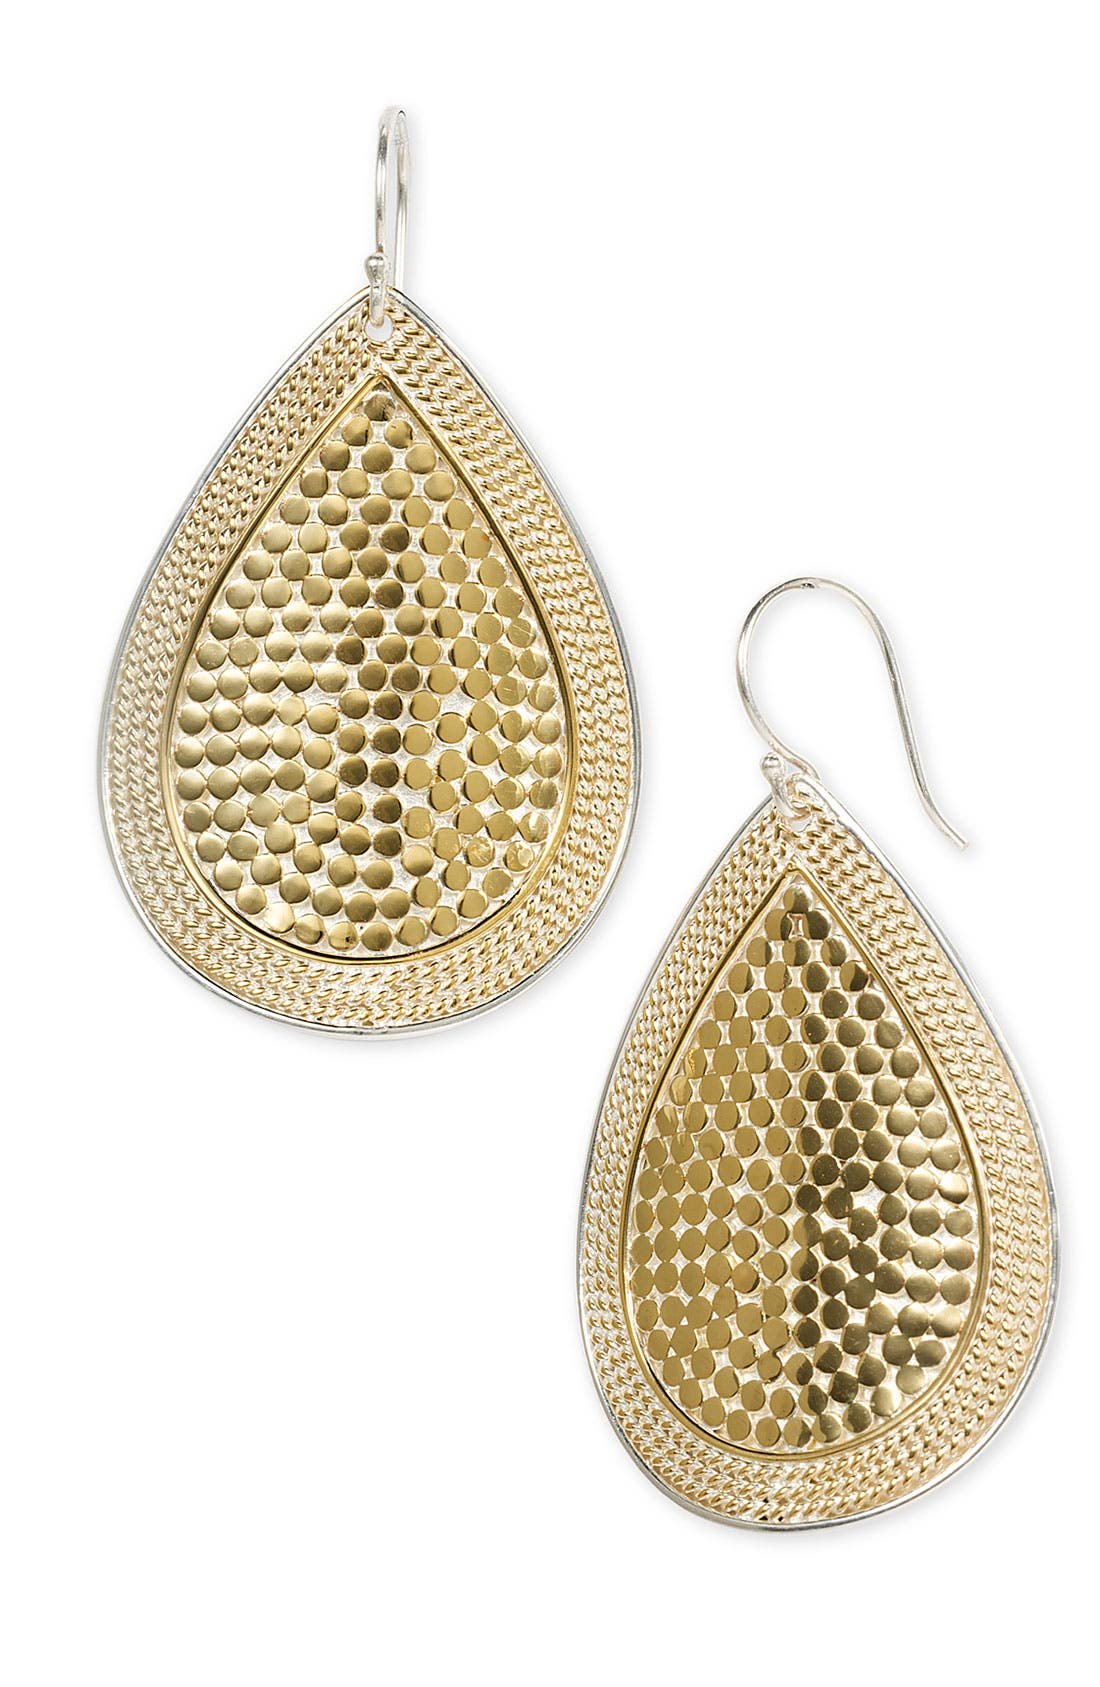 Alternate Image 1 Selected - Anna Beck 'Gili' Large Drop Earrings